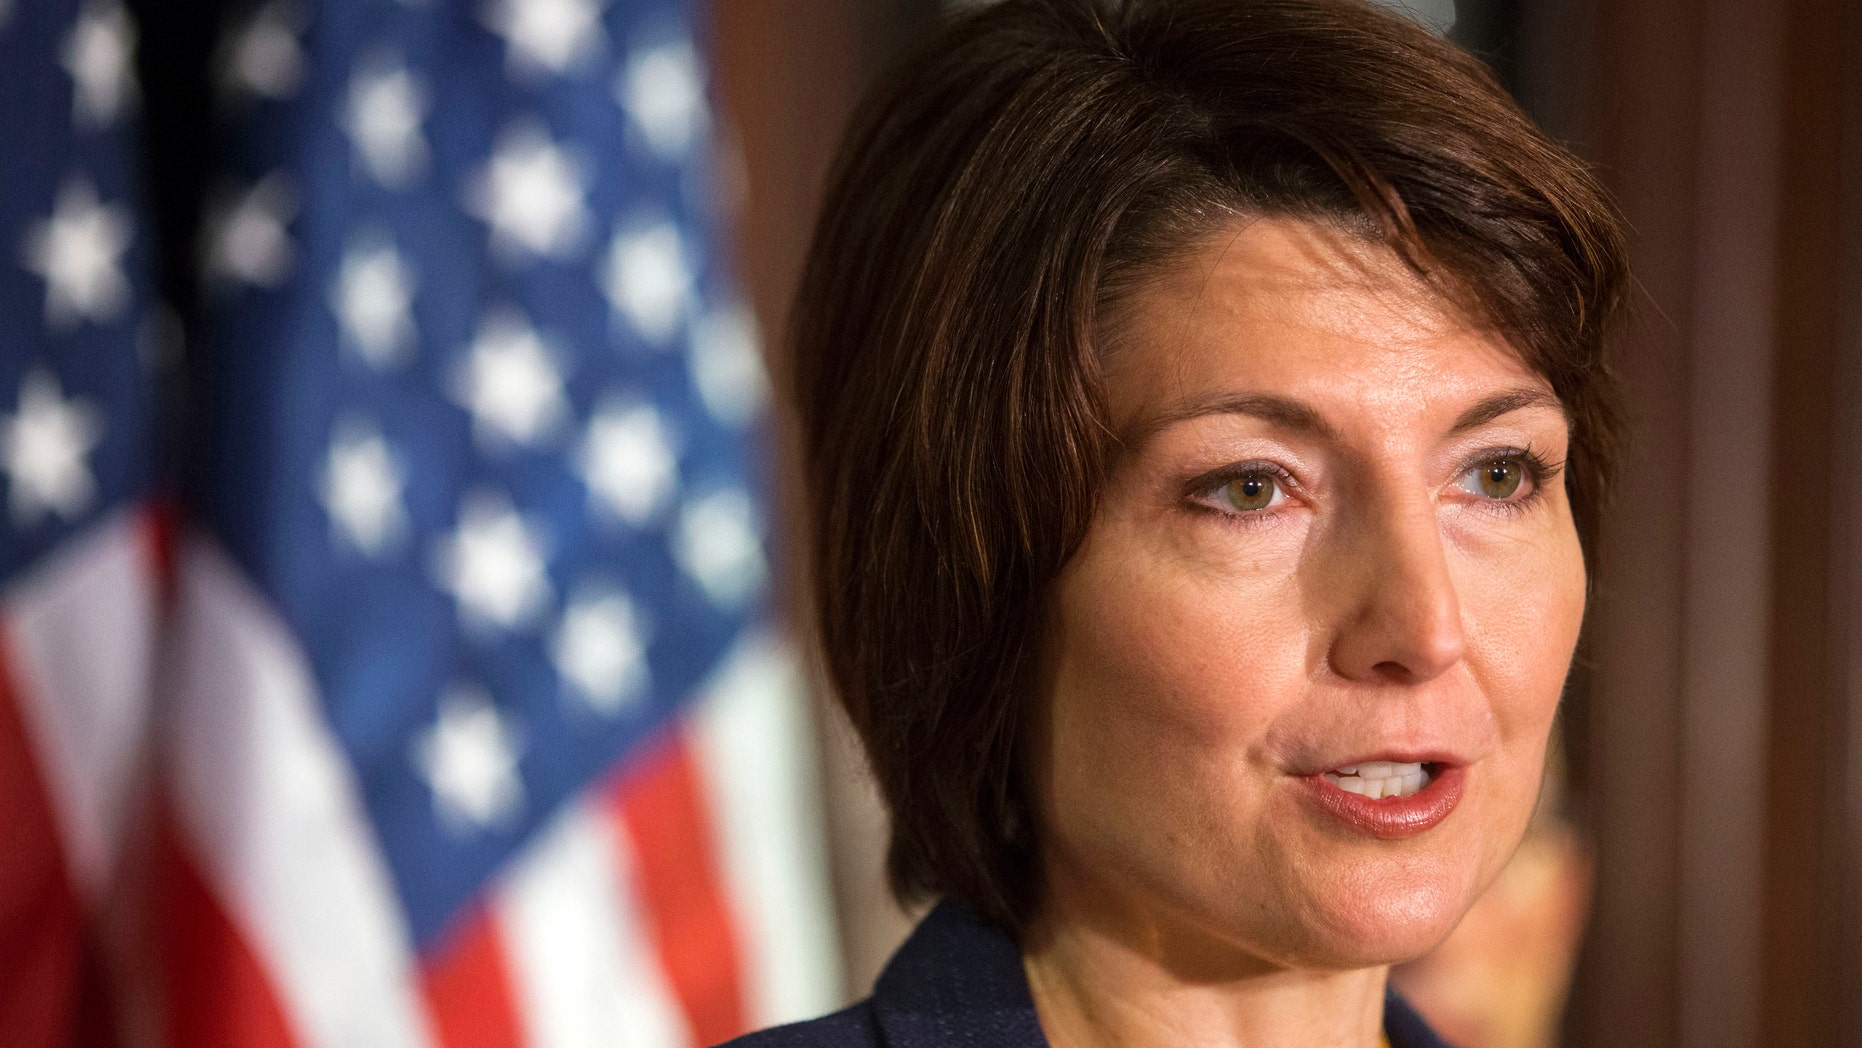 FILE - In this April 16, 2013 file photo, Rep. Cathy McMorris Rodgers, R-Wash. speaks on Capitol Hill in Washington. McMorris Rodgers, the highest ranking GOP woman in Congress, will give the party's response to President Barack Obama's State of the Union address on Tuesday. (AP Photo/Jacquelyn Martin, File)